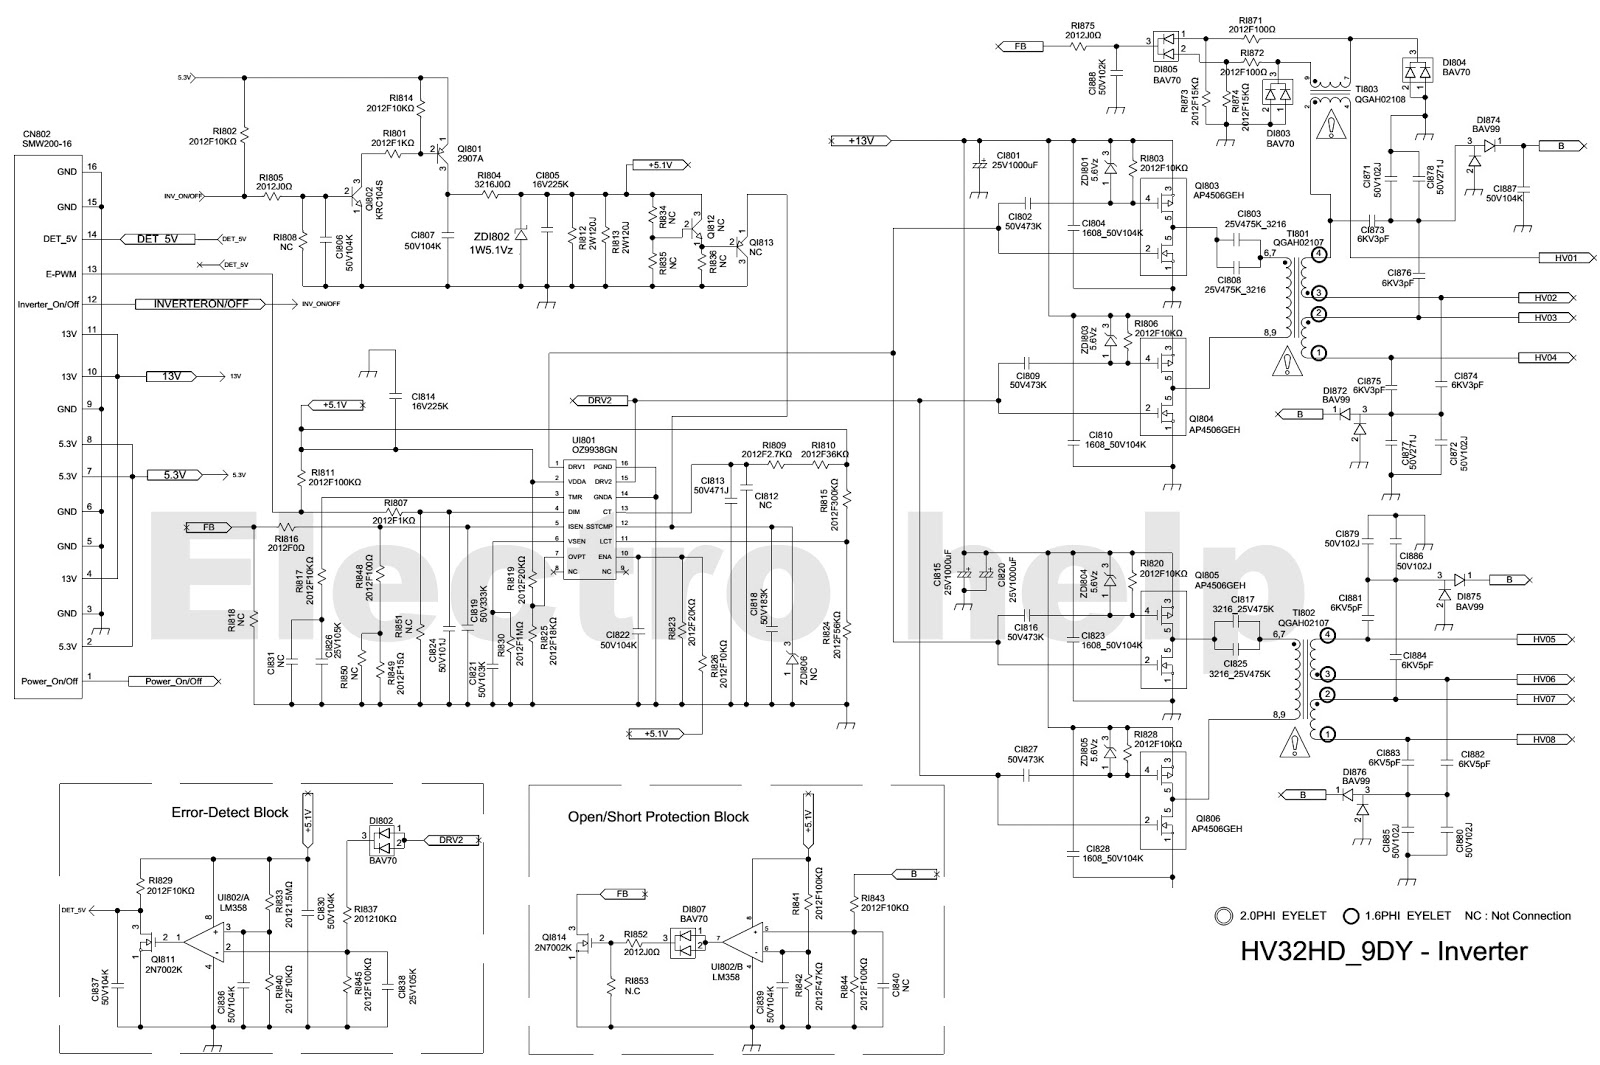 lcd inverter wiring diagram lcd image wiring diagram samsung lcd tv power supply bn44 00438a hv332hd power and back on lcd inverter wiring diagram